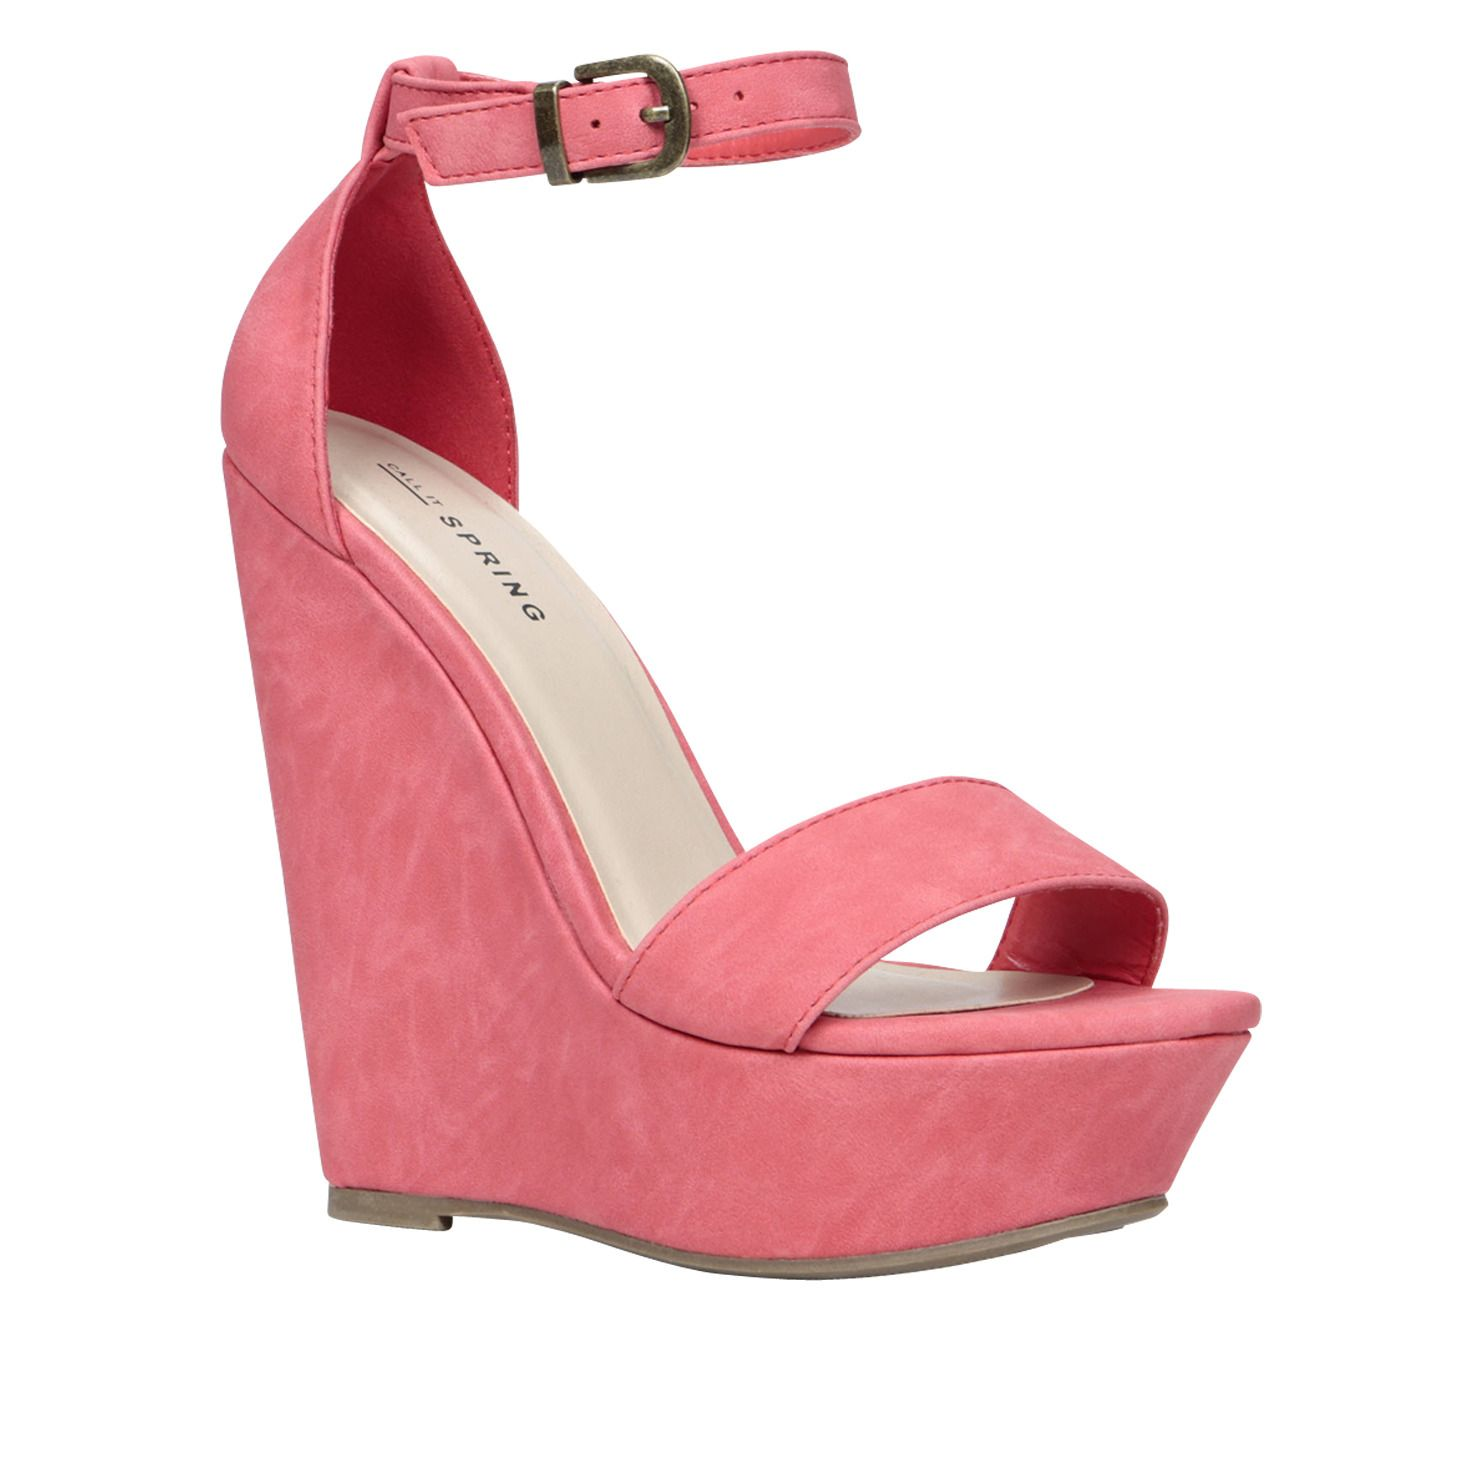 Buy FRALIRIEN women's sandals wedges at Call it Spring. Free Shipping!